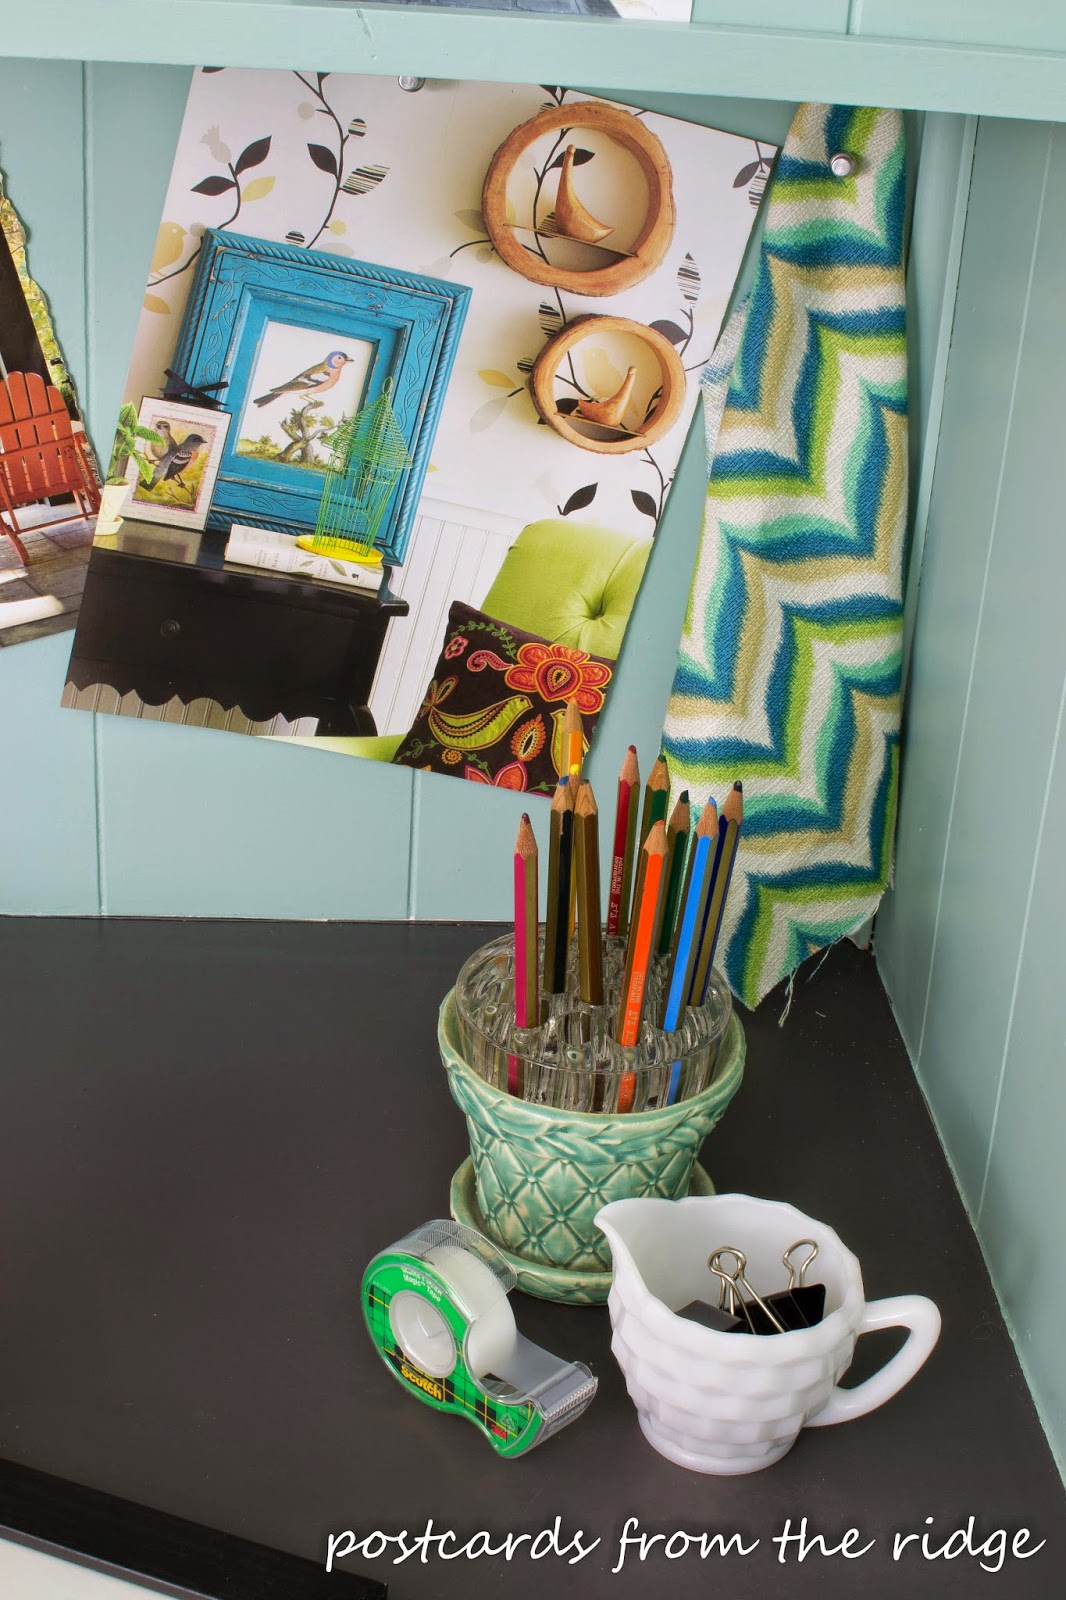 Creative Ideas for Organizing Craft Supplies. So fun and clever! #organize